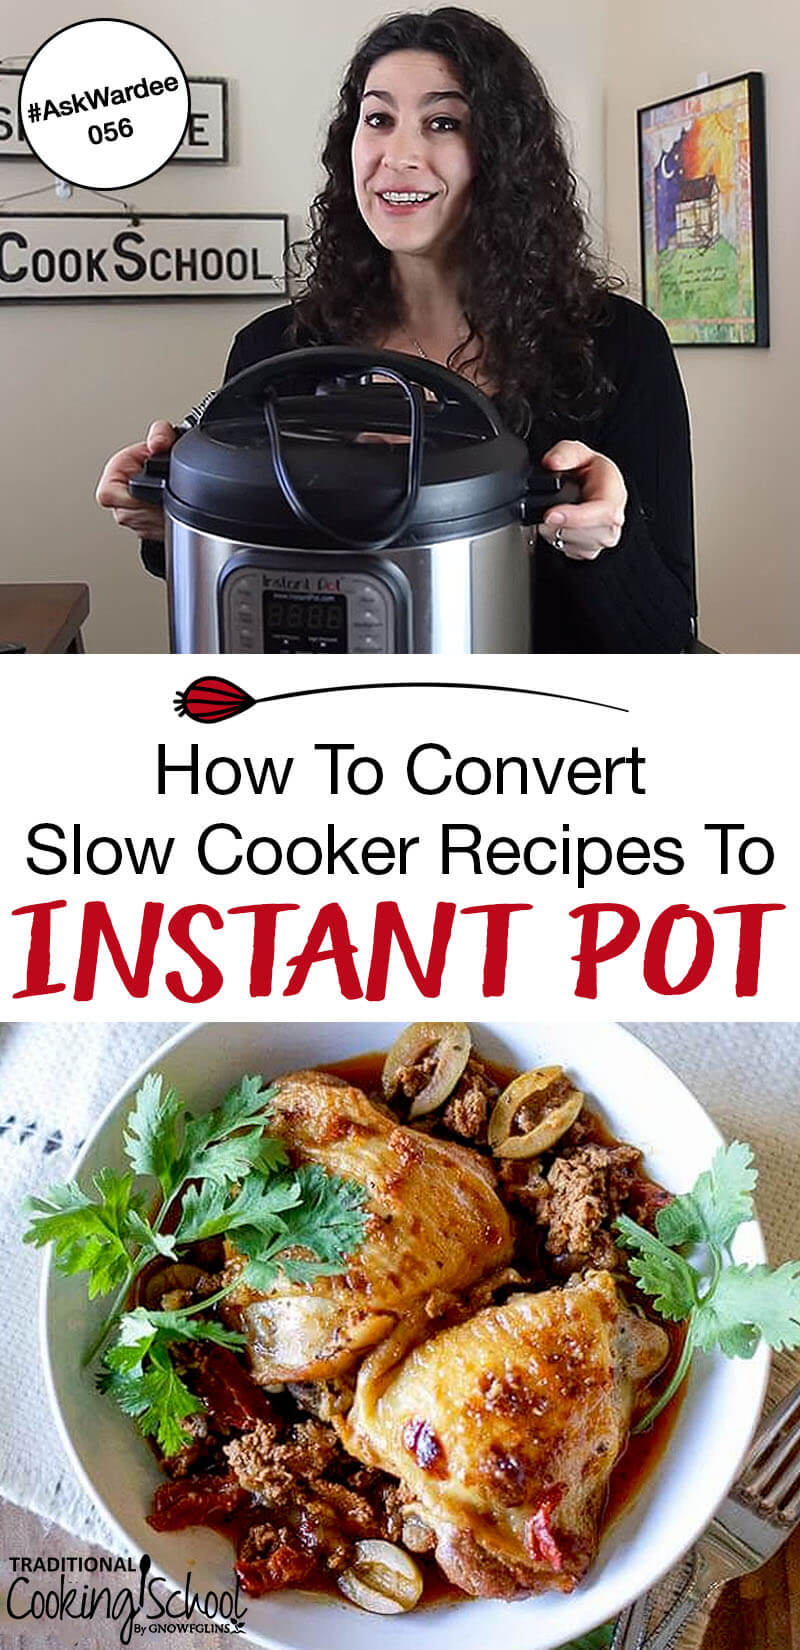 It is possible to take your favorite, hands-off slow cooker recipes and adapt them for your pressure cooker or Instant Pot. Watch, listen, or read for my 9 tips to convert slow cooker recipes into pressure cooker recipes! | AskWardee.tv